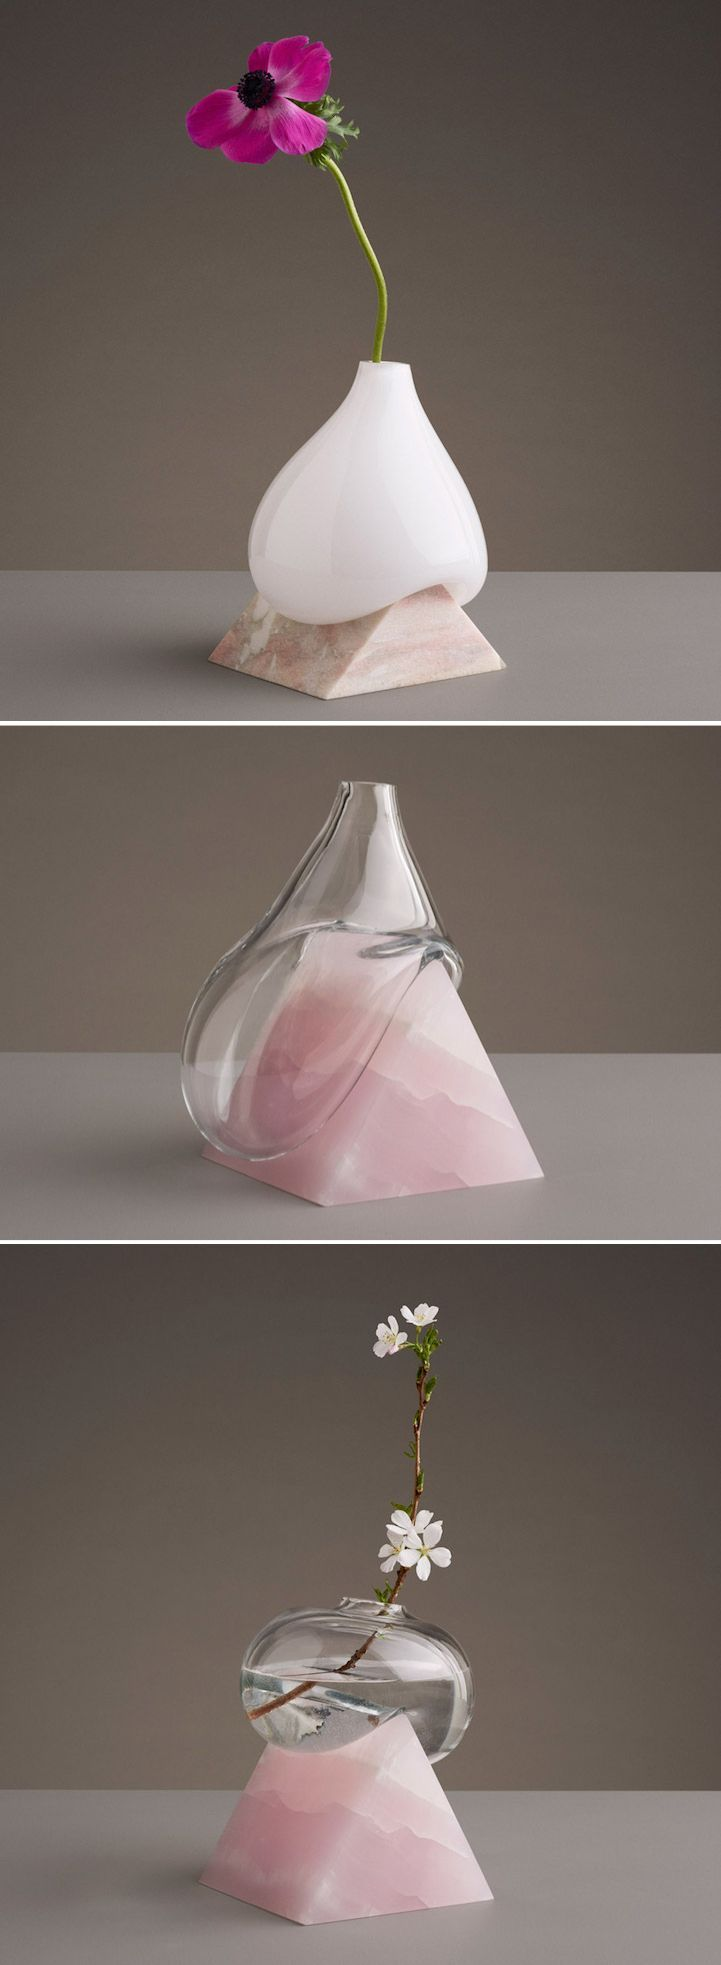 Designer Erik Olovsson of Studio E.O juxtaposes smooth, rounded vessels of hand-blown glass against clear-cut geometric slabs of patterned stone.